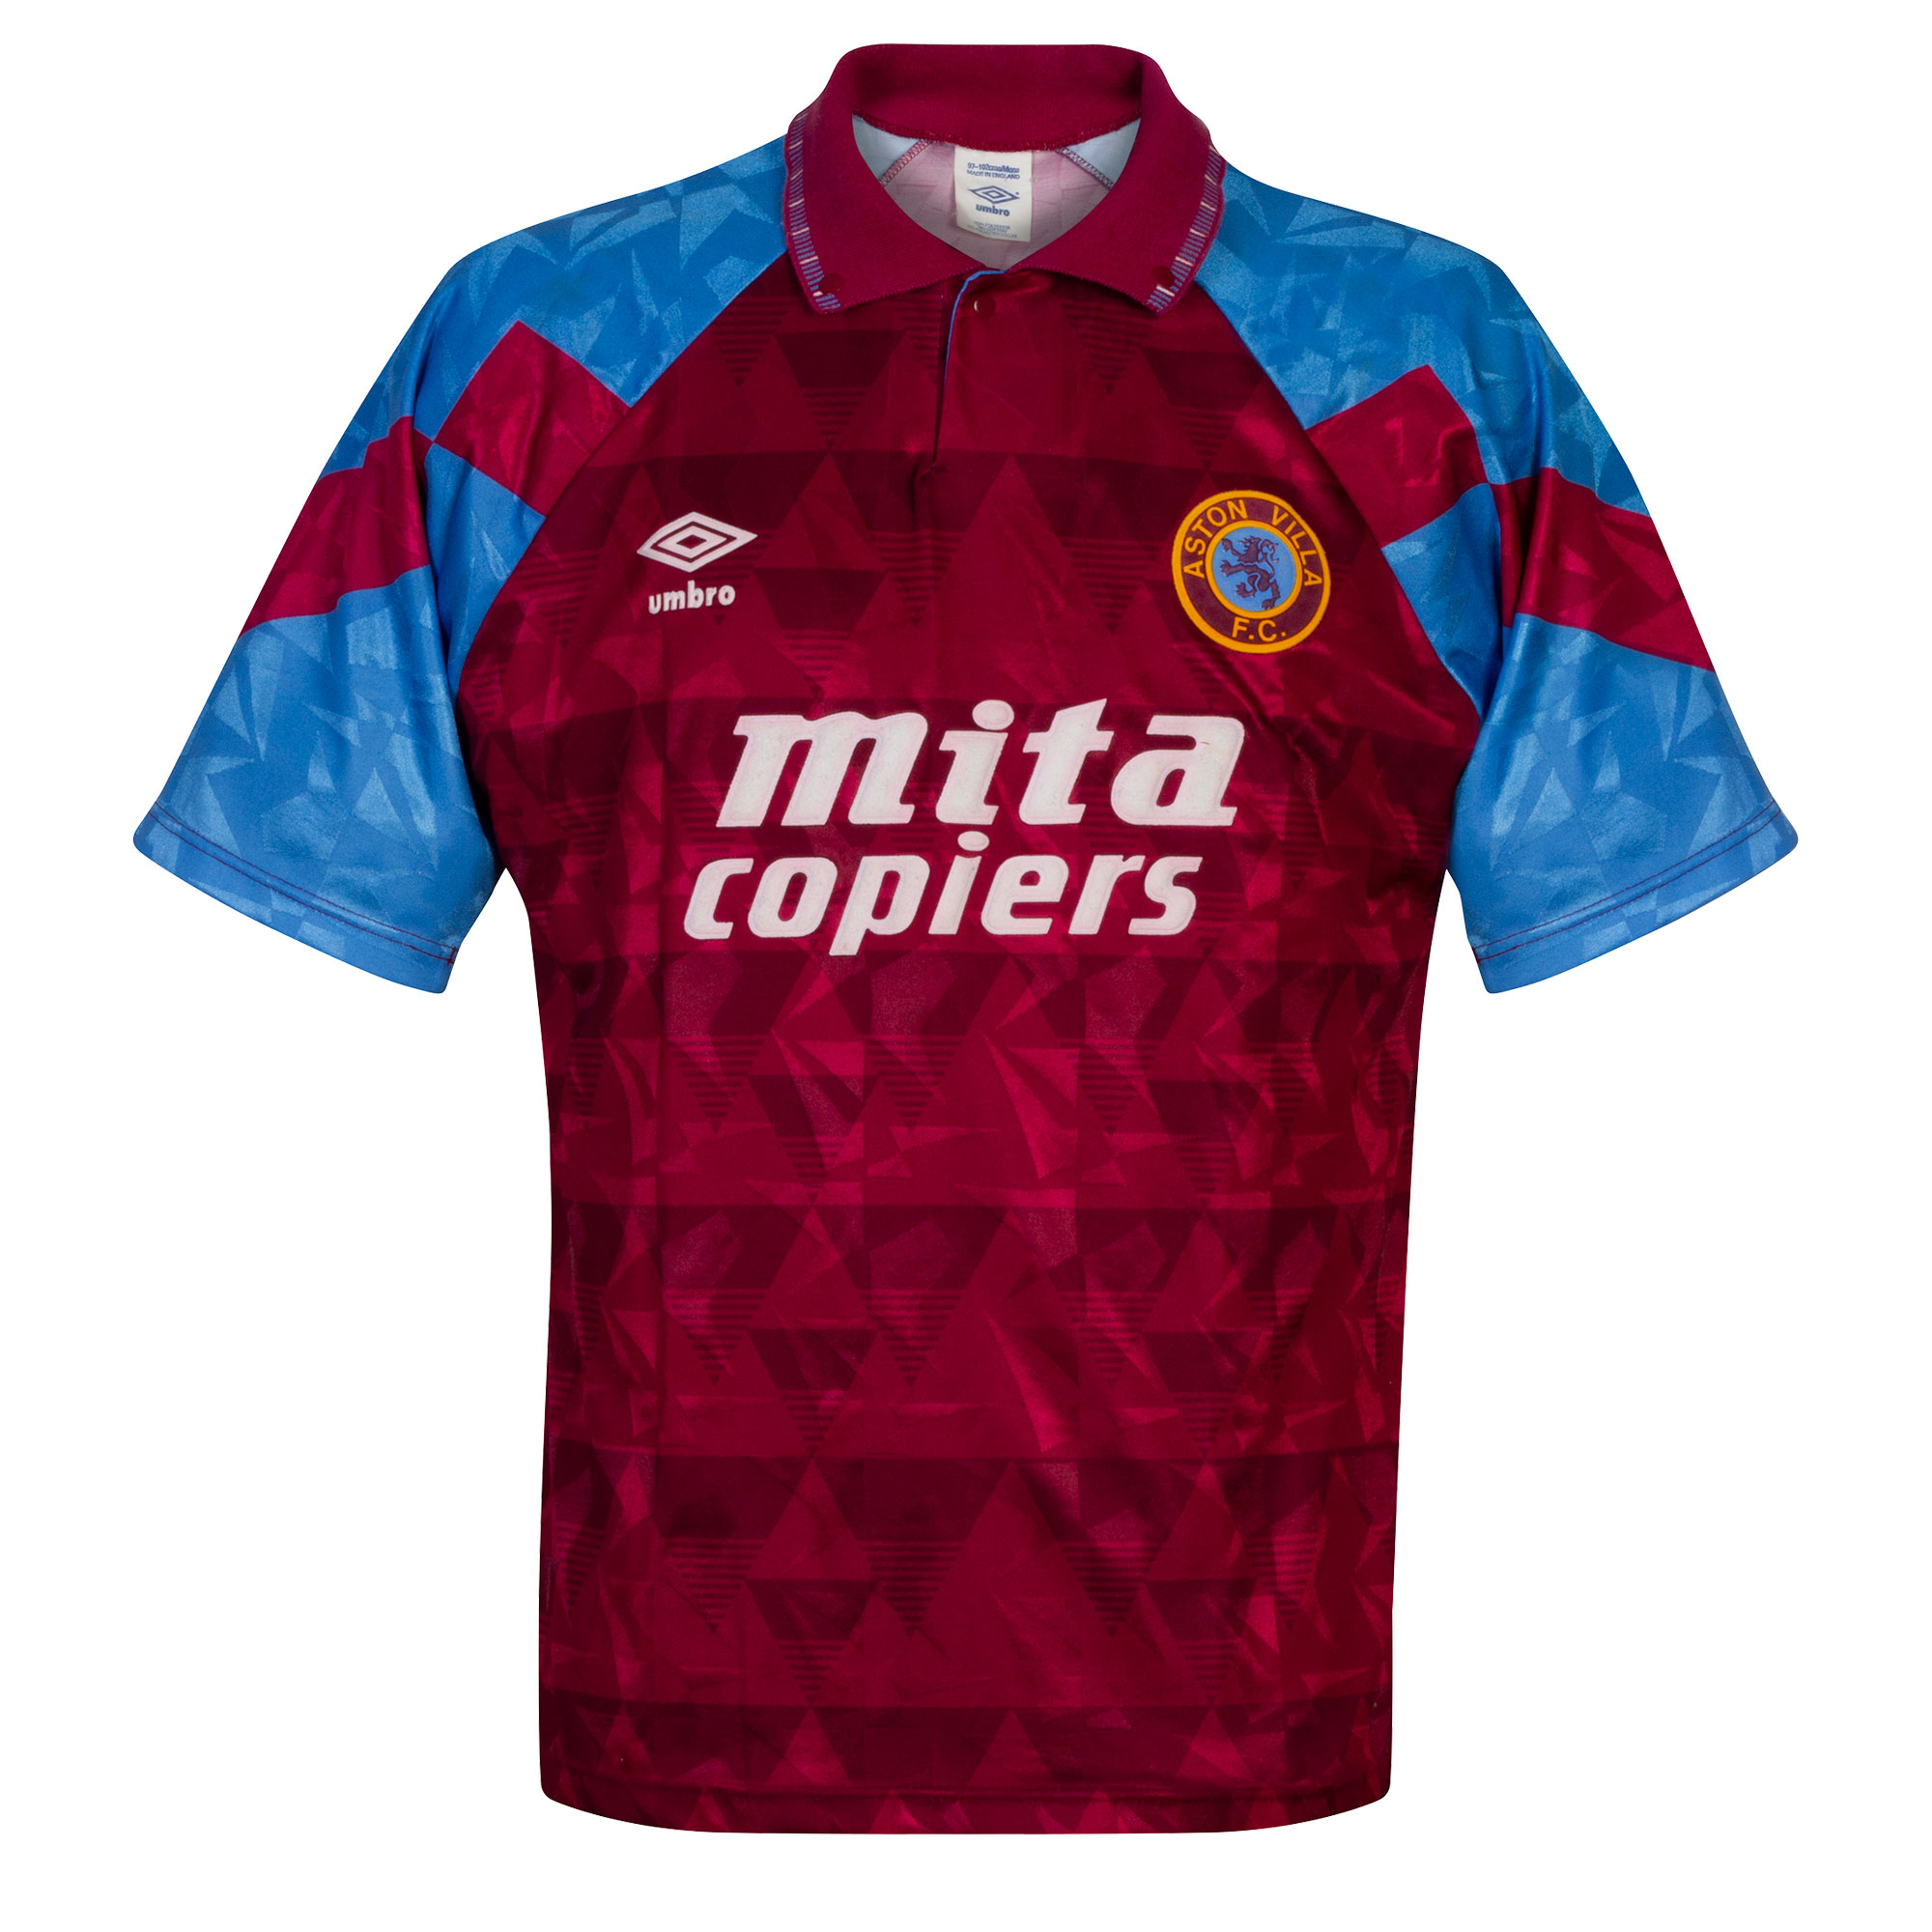 Umbro Aston Villa 1990-1992 Home Shirt - USED Condition (Great) - Size M